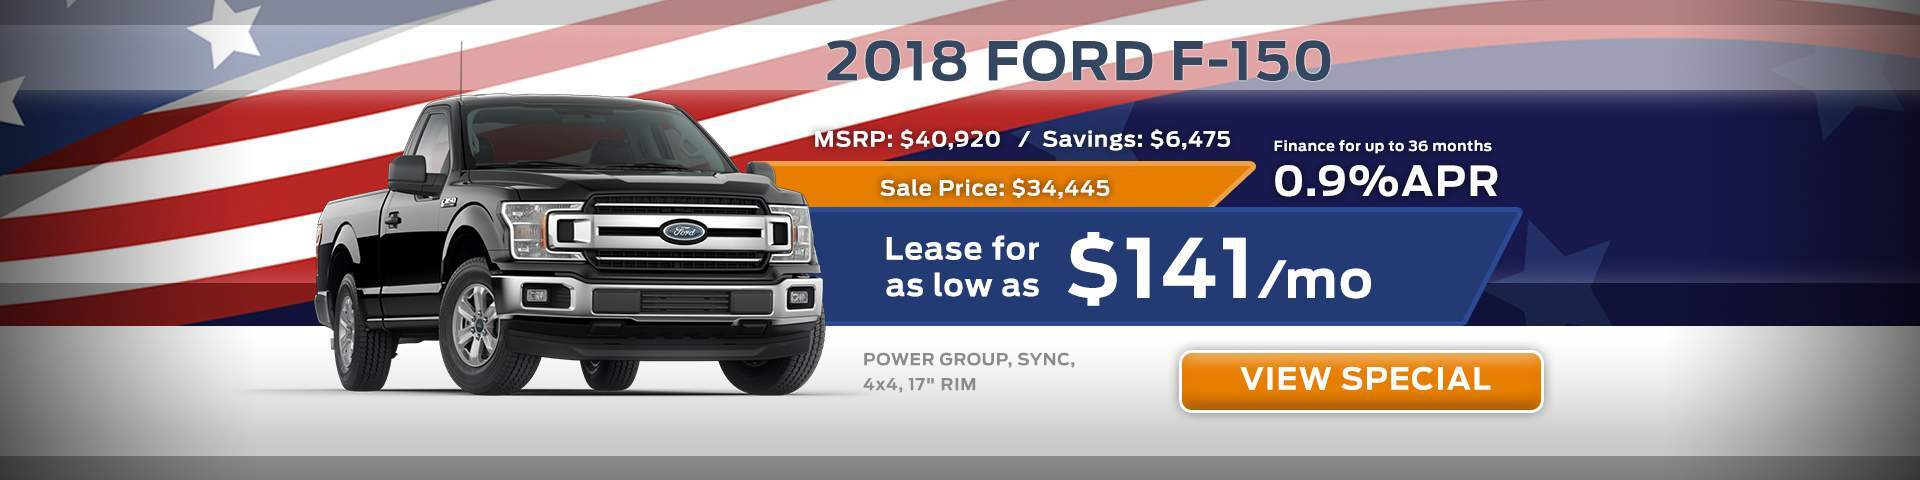 2018 Ford F-150 Special